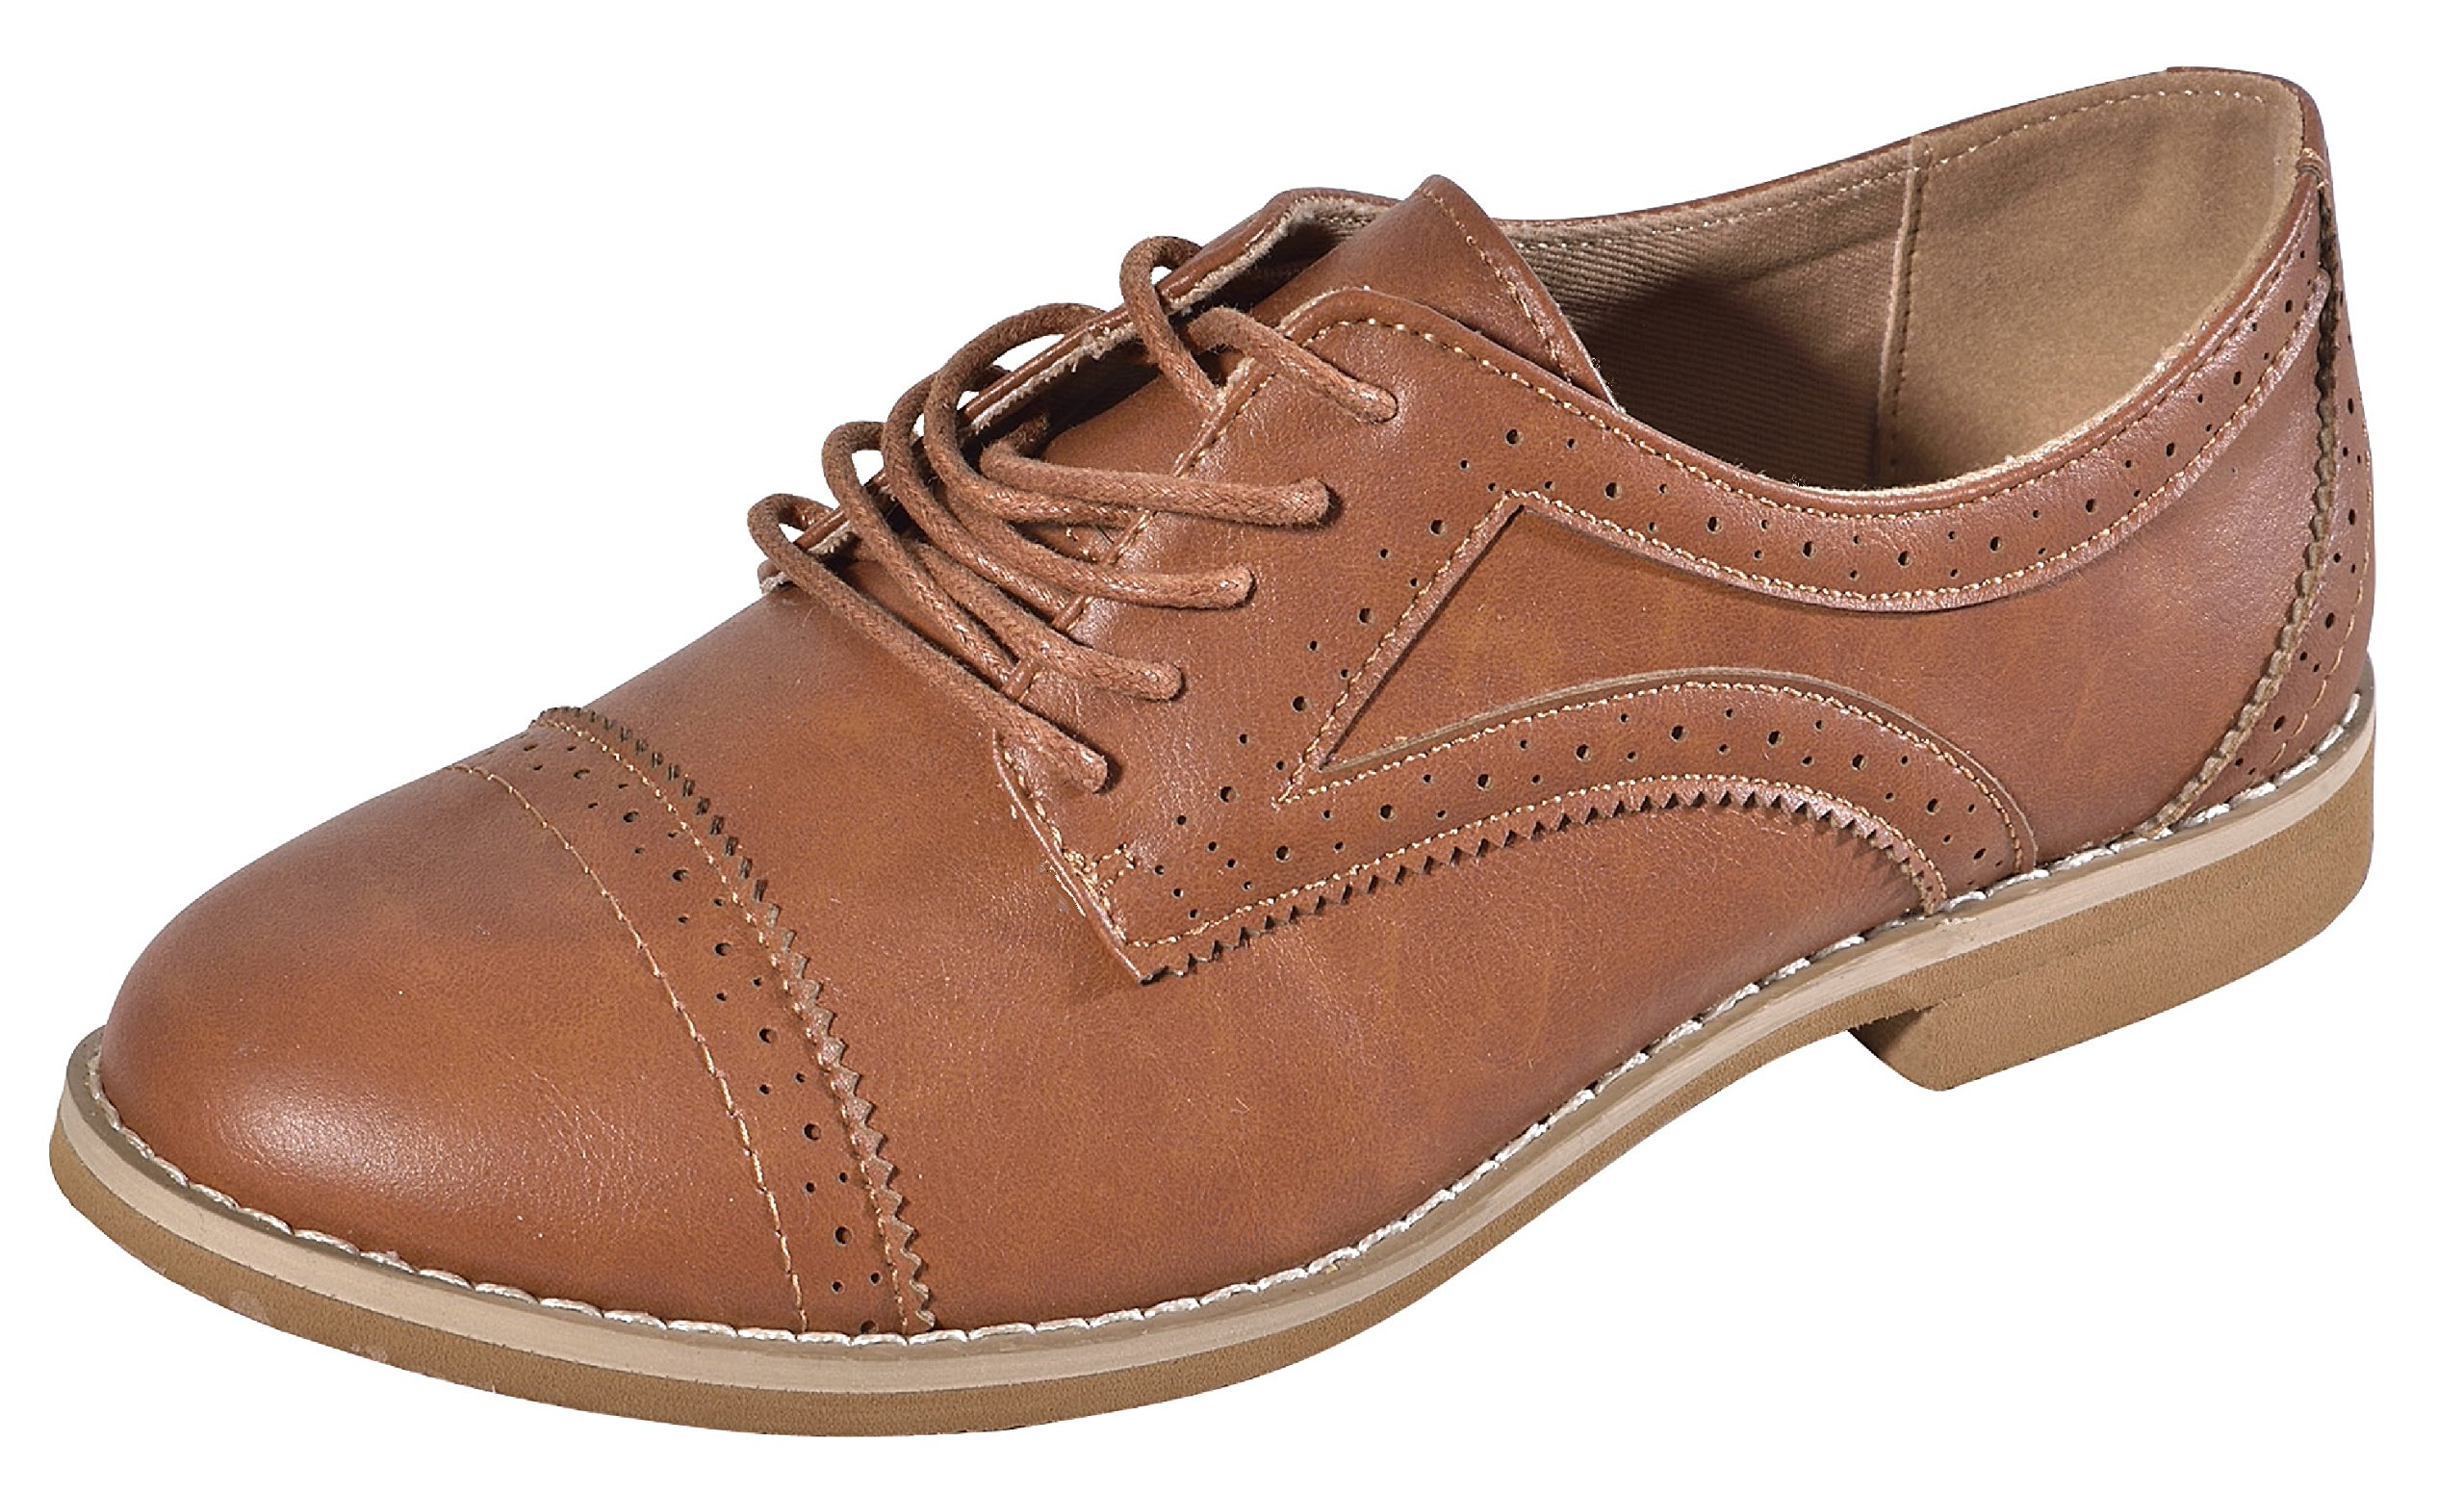 Comfortable Alyn Brown Designer Faux Leather Oxford Wingtip Lace Slip On Comfy Low Flat Heel Closed Toe Cute Modern Going Back to School Sneaker Shoe for Sale Women Teen Girl (Size 9, Tan)